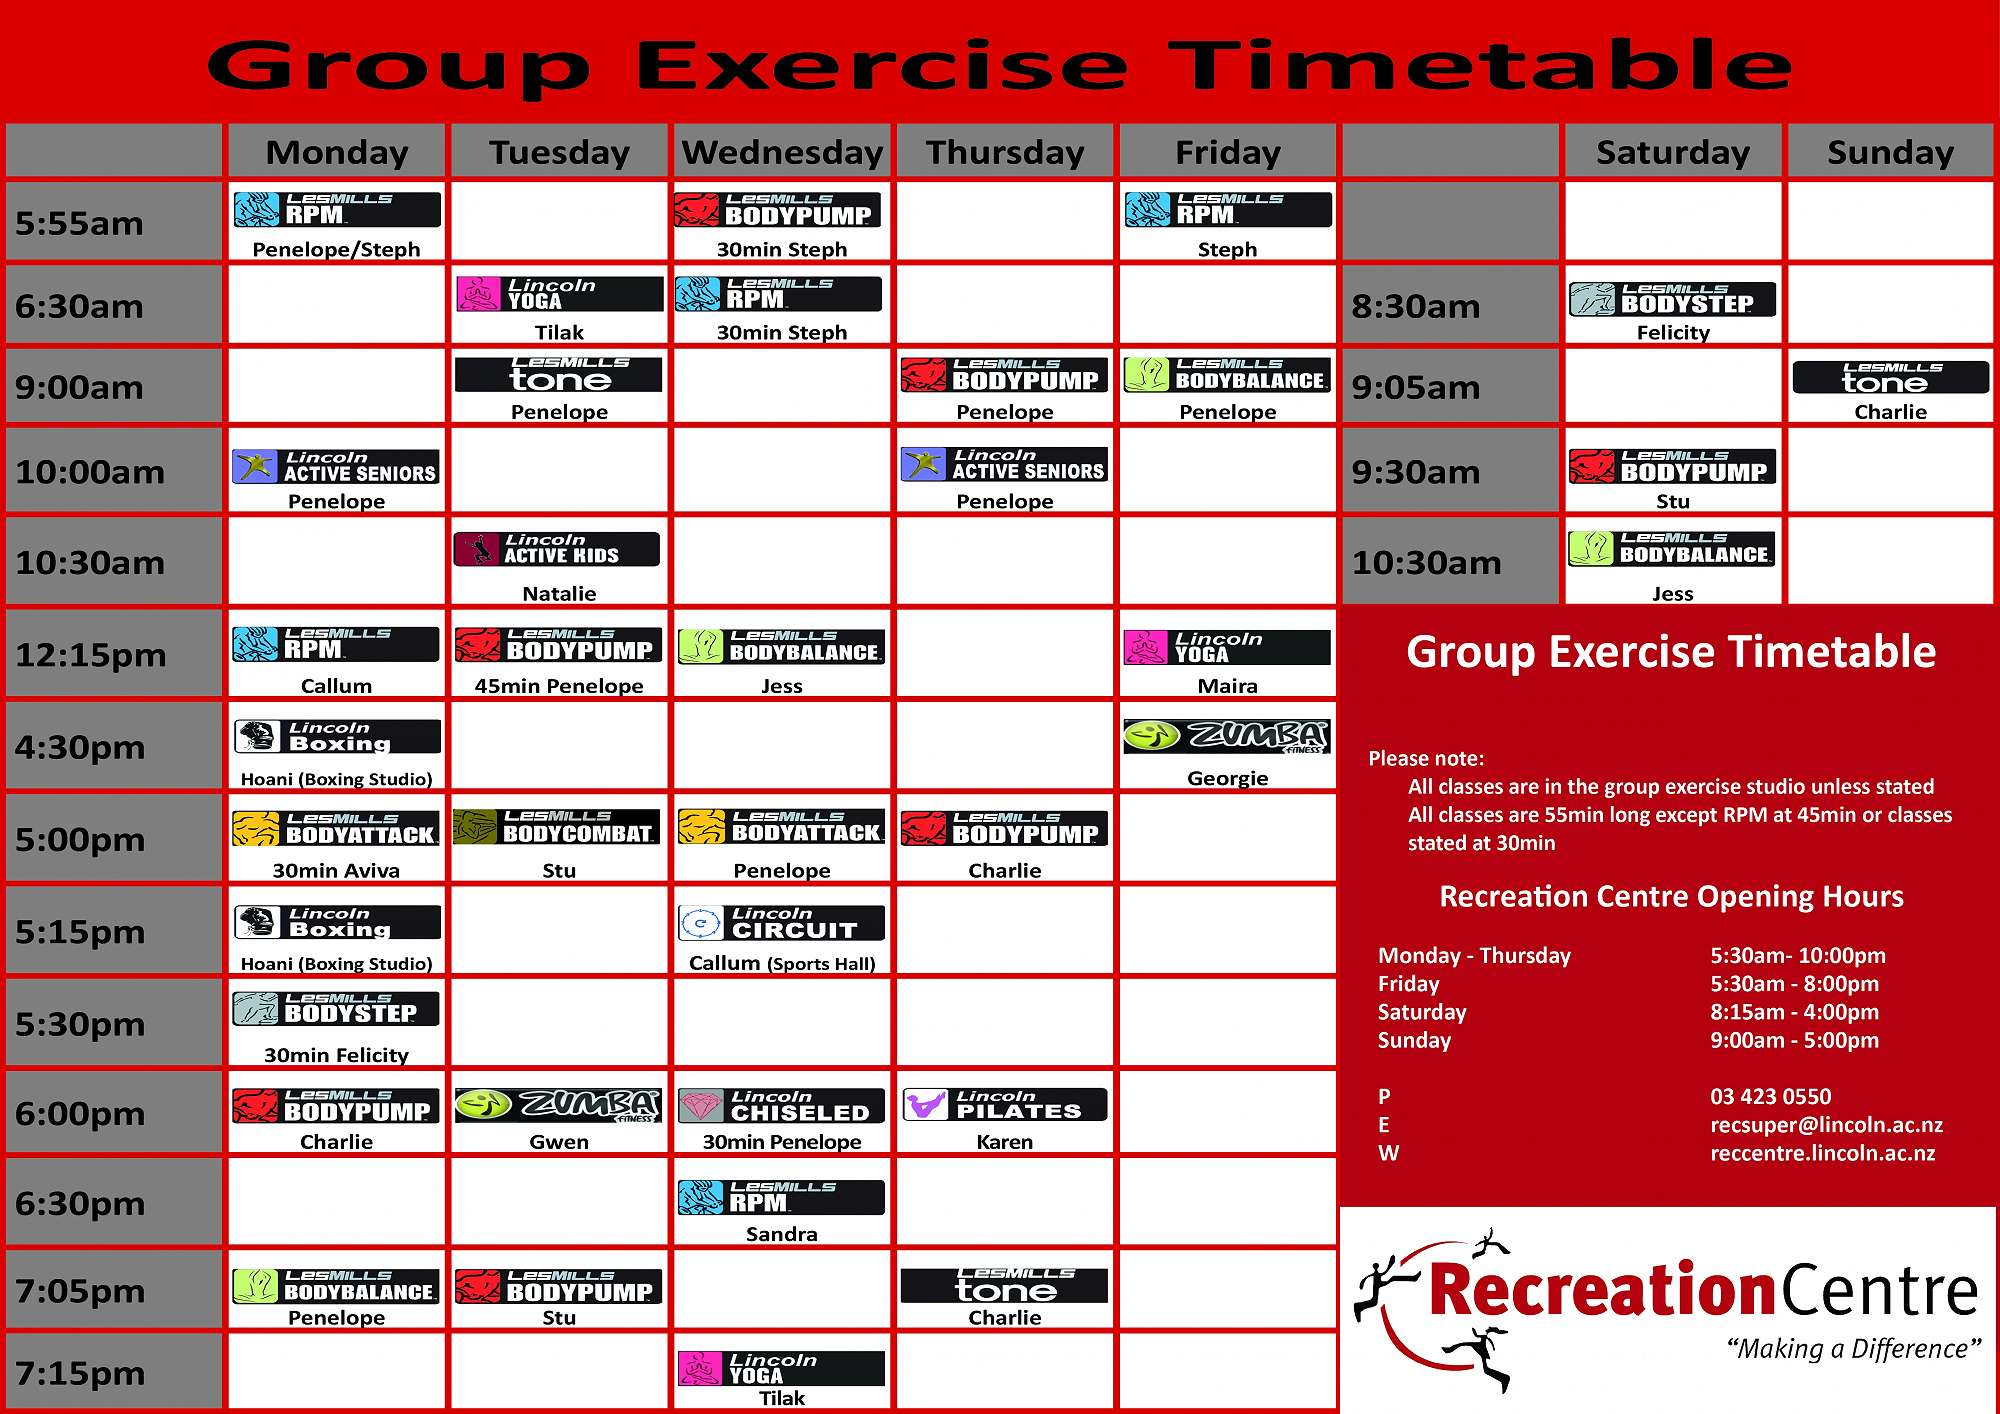 Group Exercise Homepage January Indoor Workout Full Body Circuit Timed September 2018 Time Table